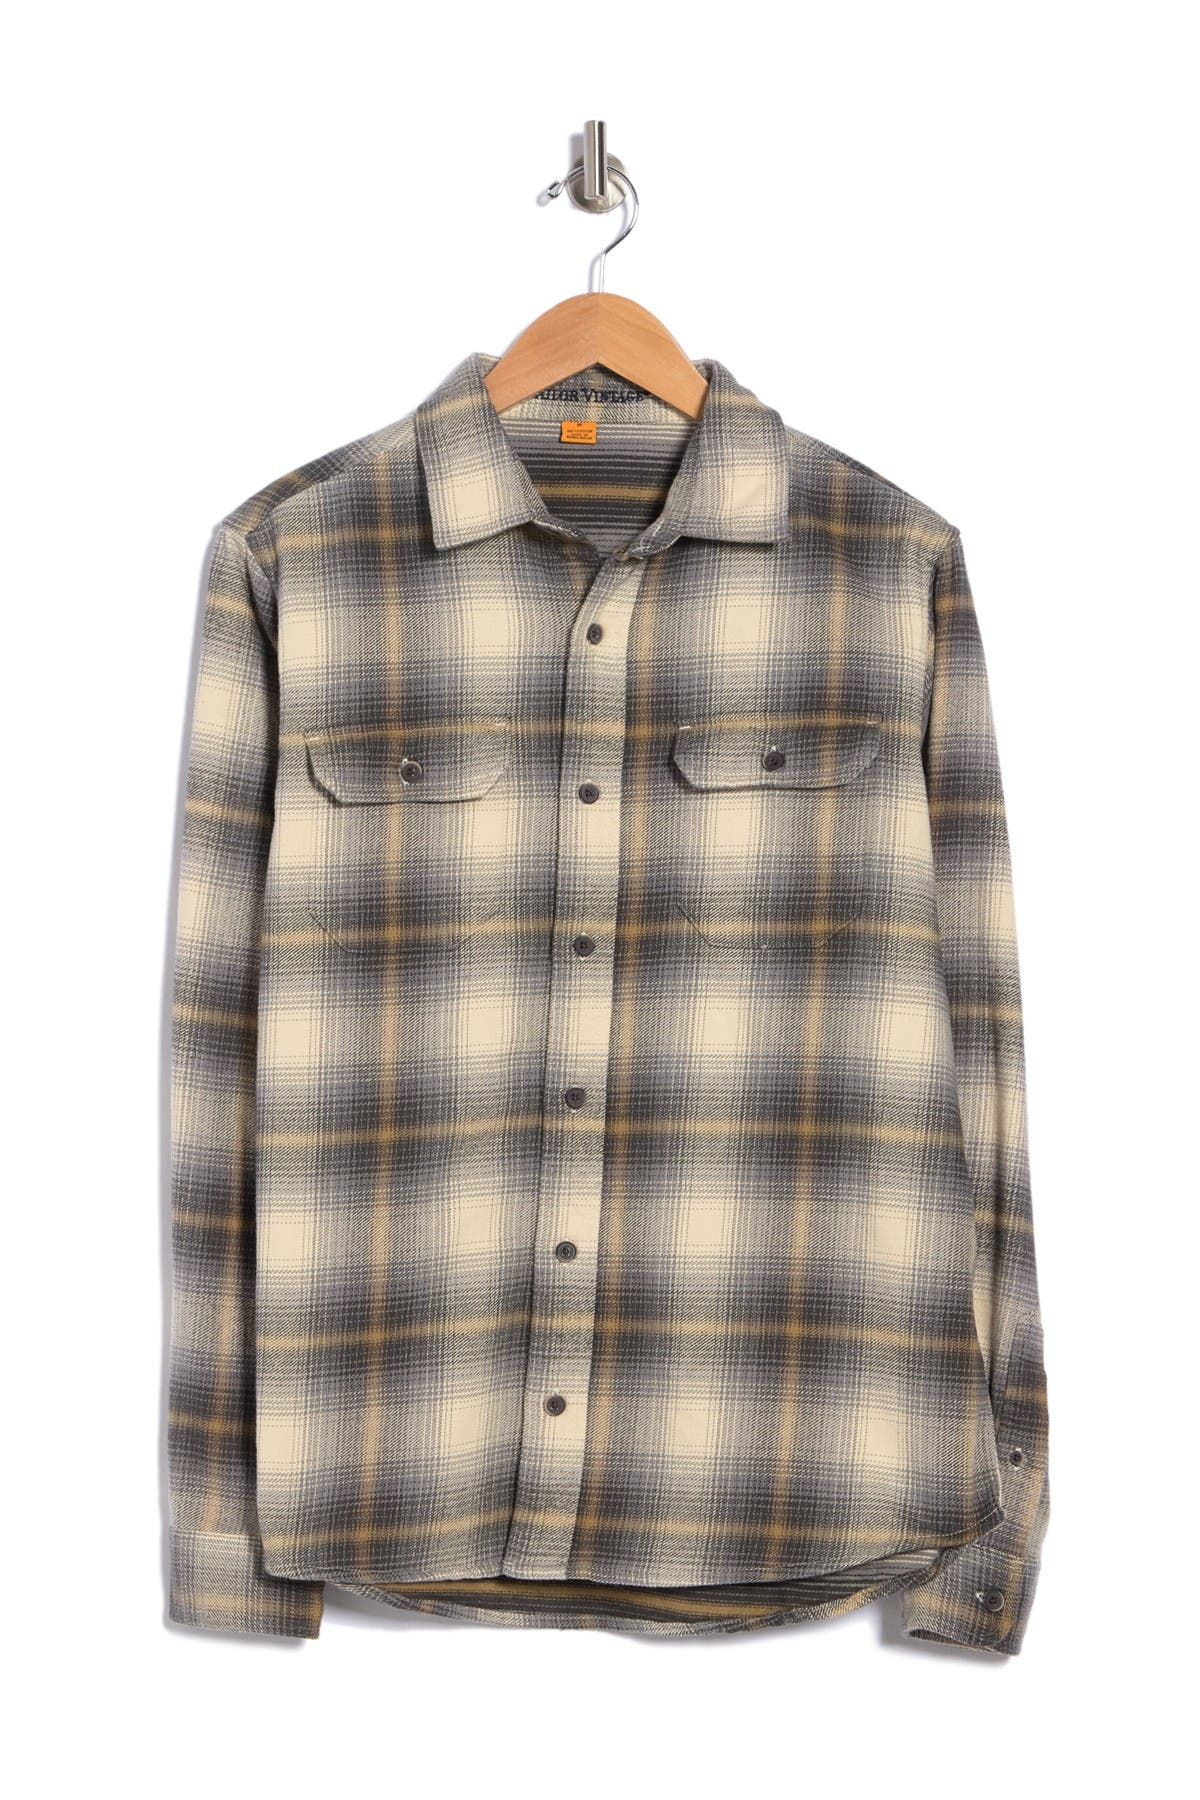 Image of Tailor Vintage Heavy Weight Brawny Shirt